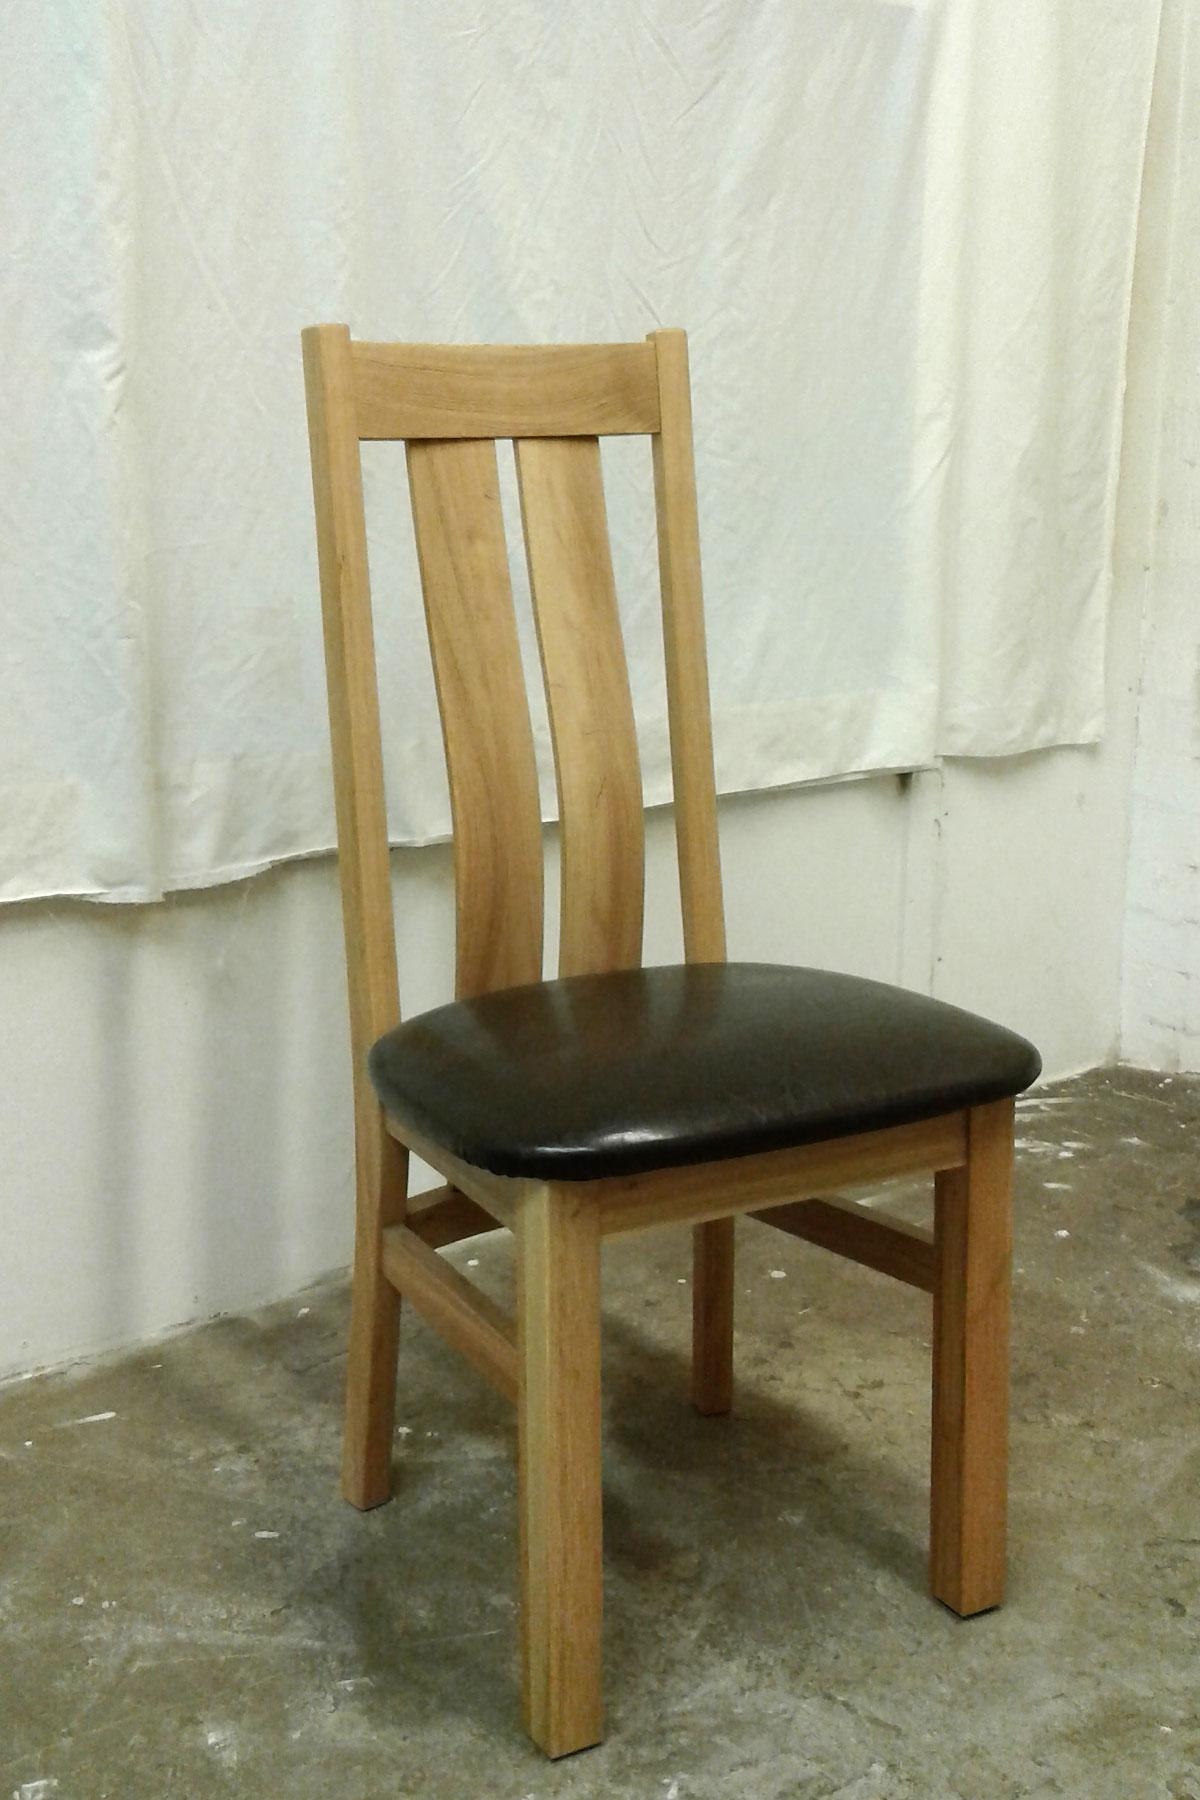 Oak chairs for sale in North Devon